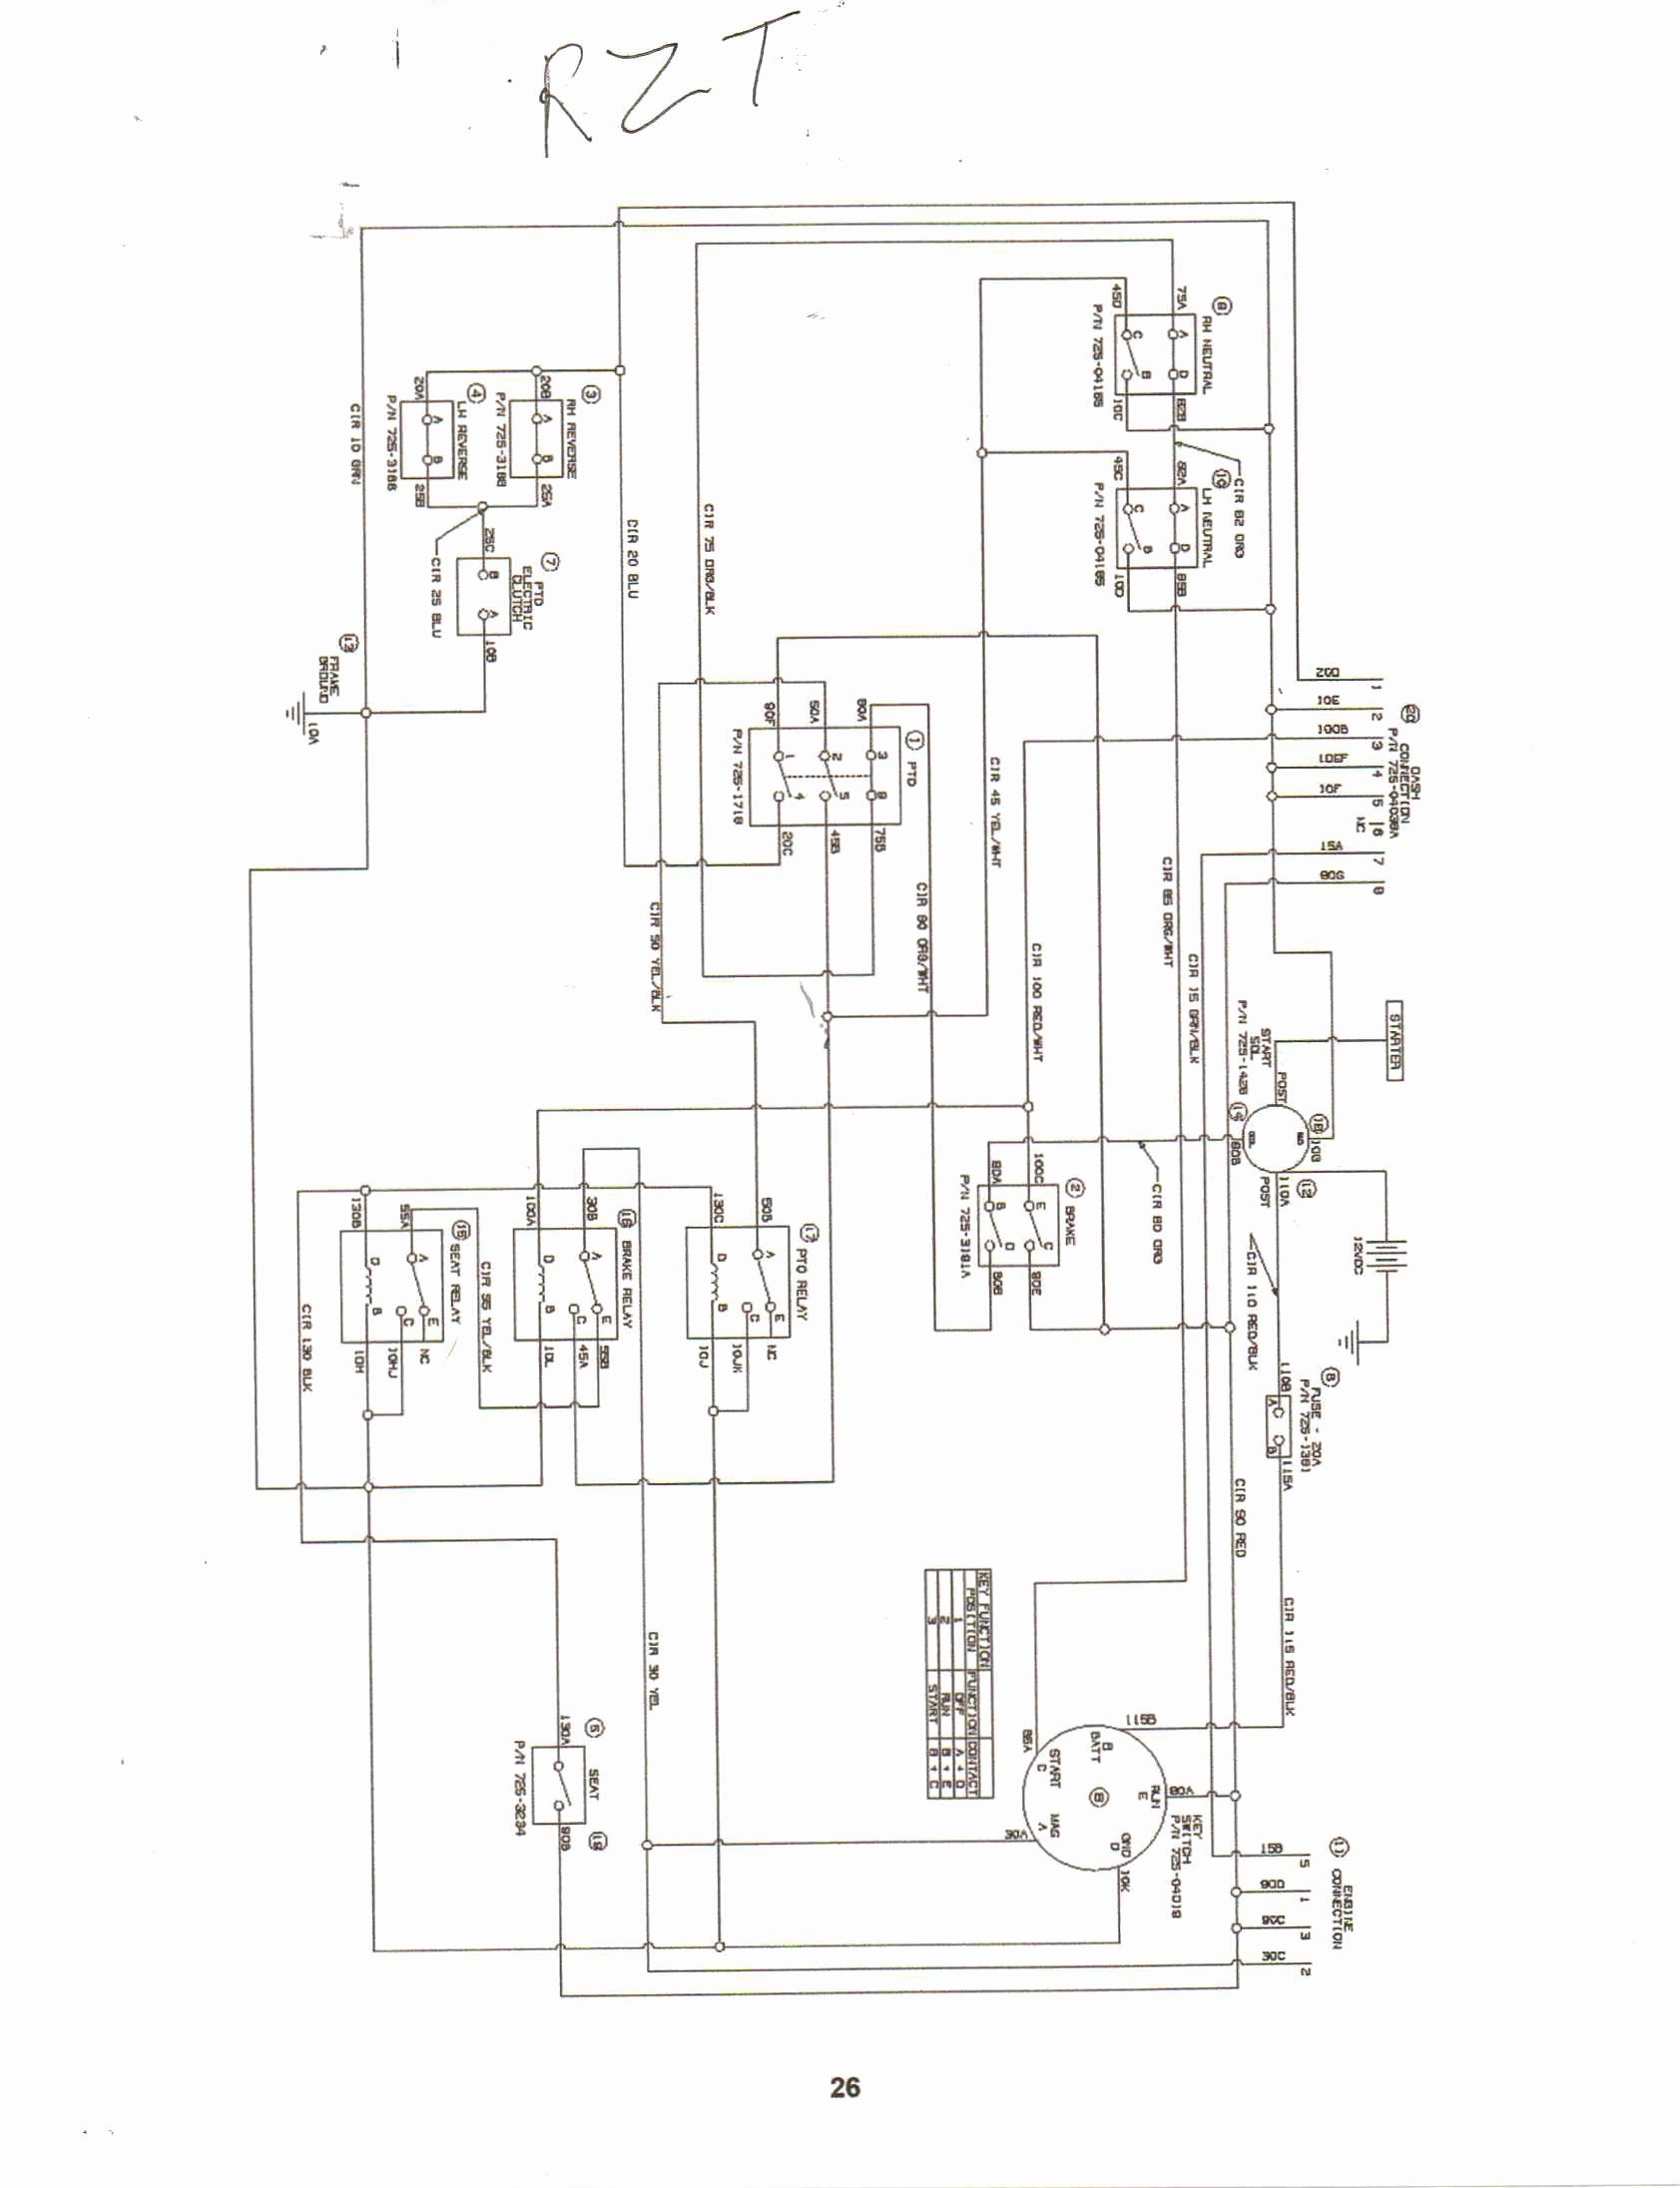 Cub Cadet Gt1554 Wiring Diagram For Your Needs